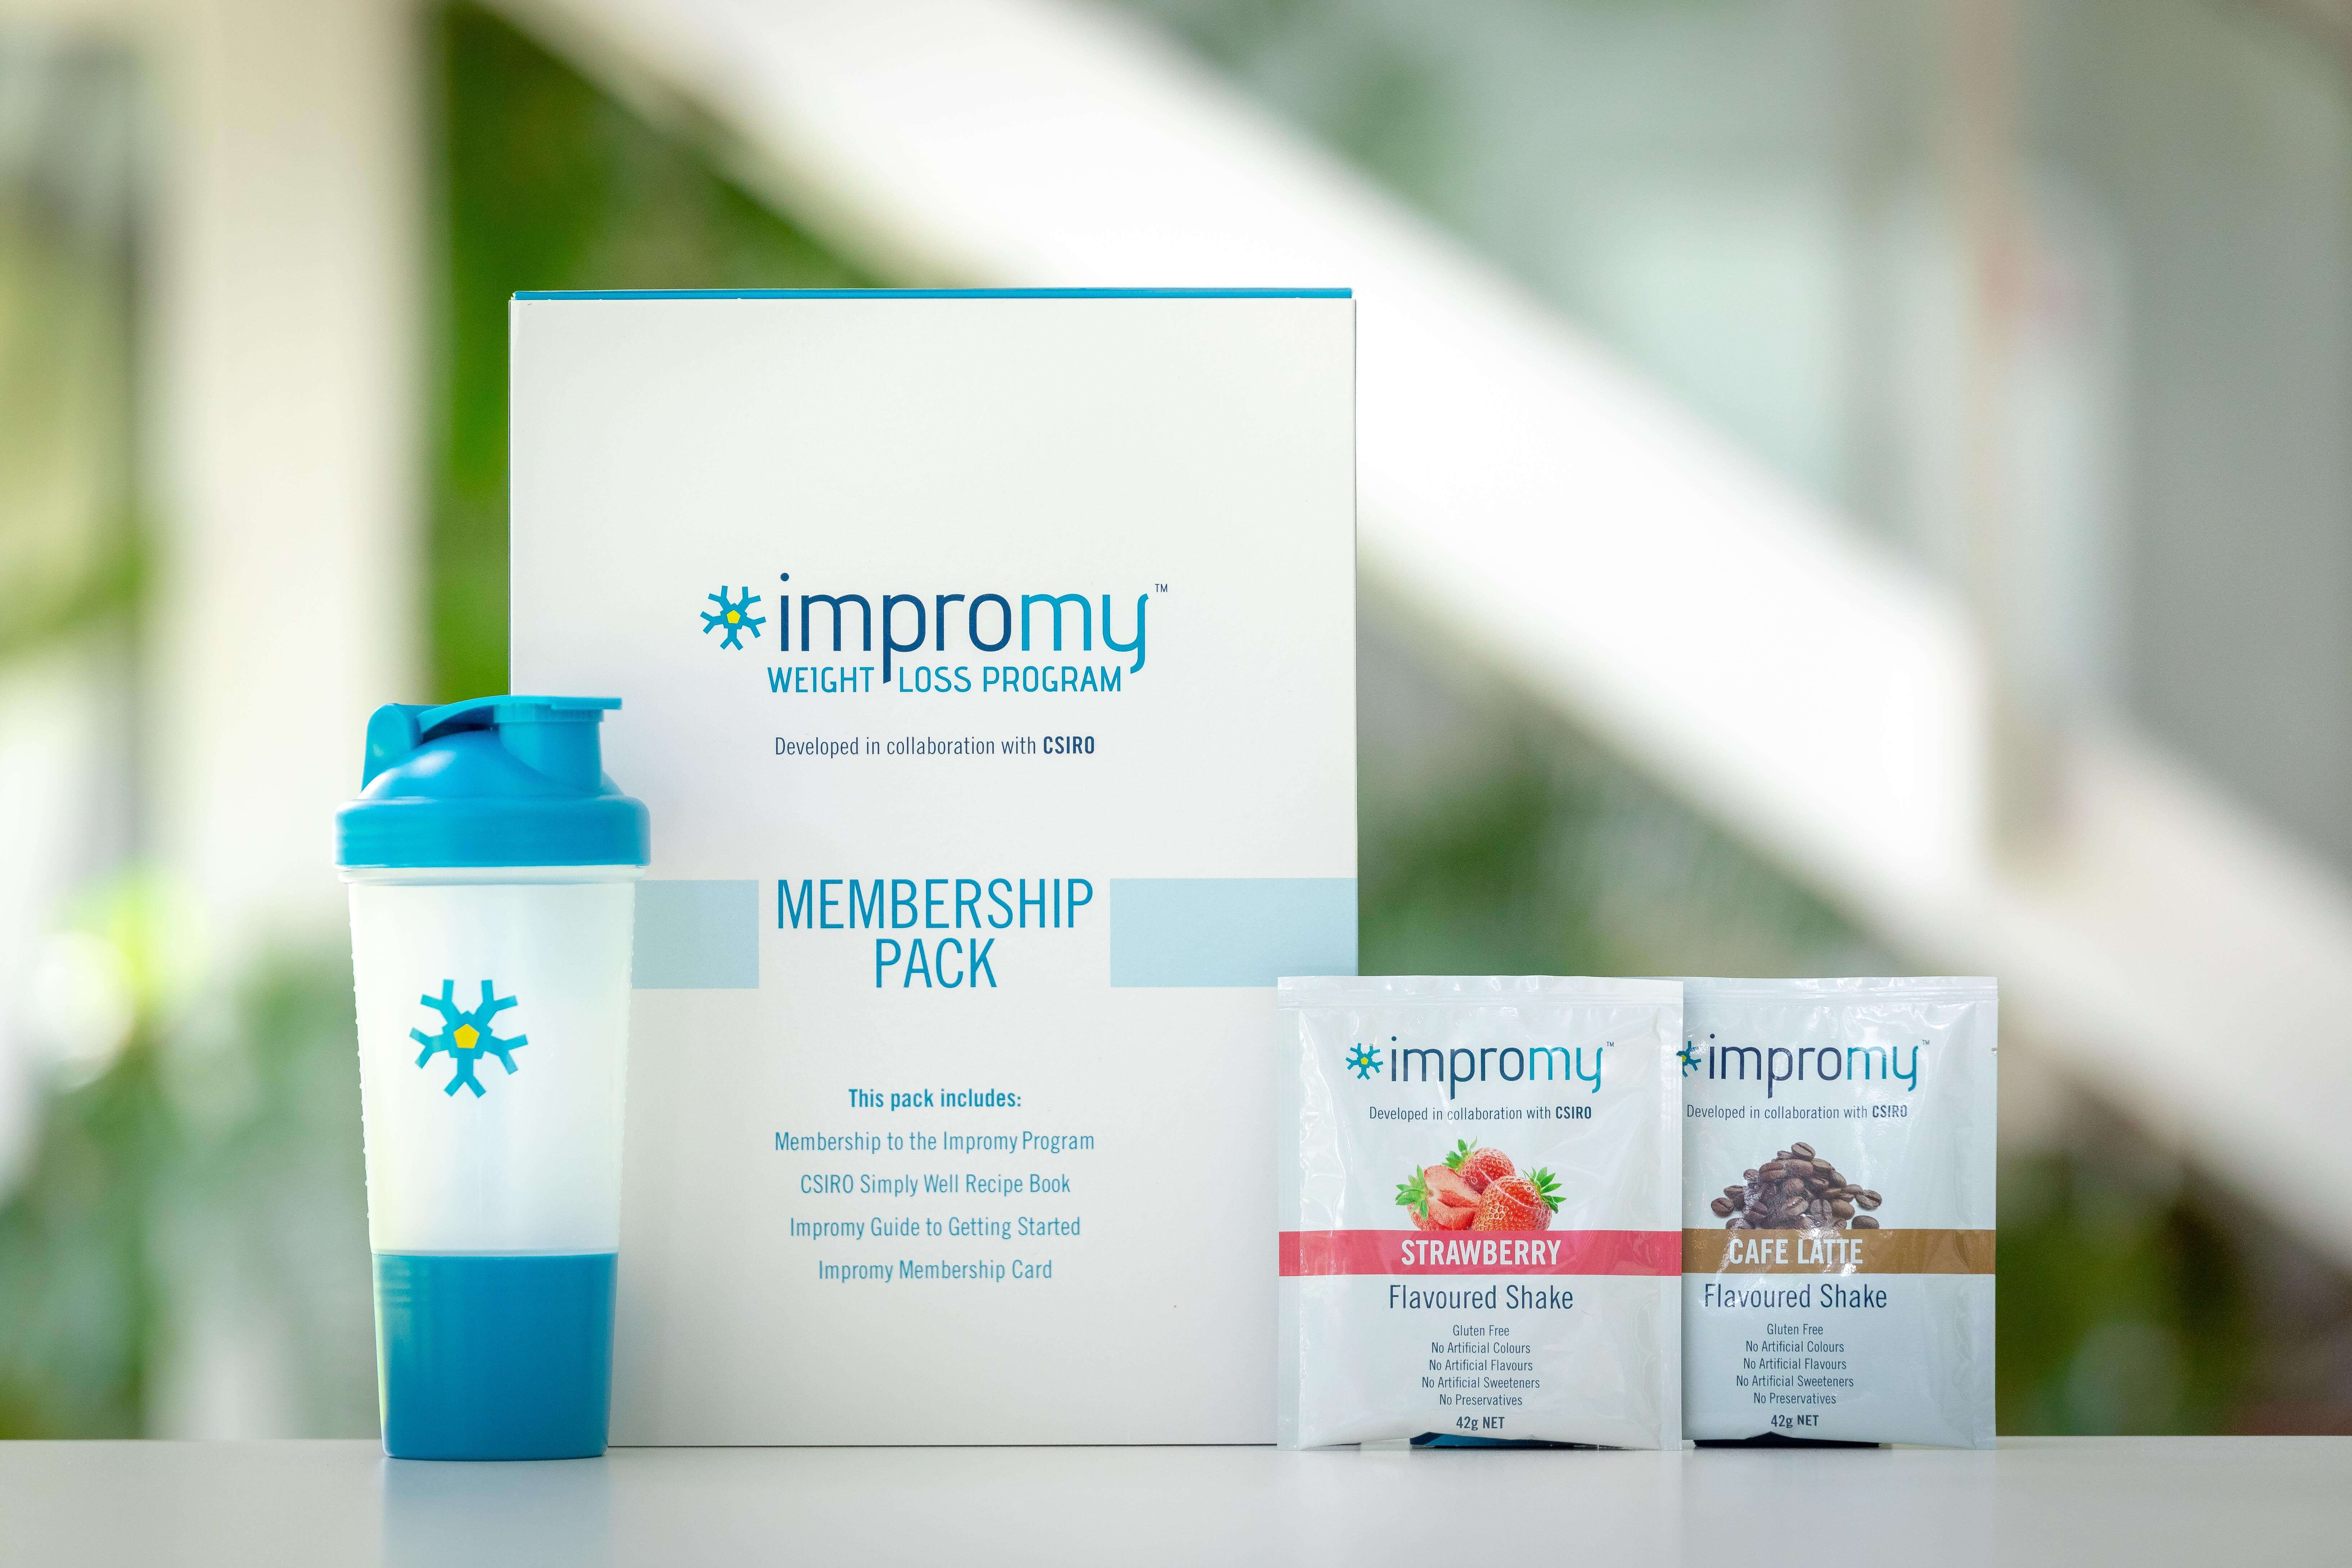 An image of  Impromy™ meal replacement products.